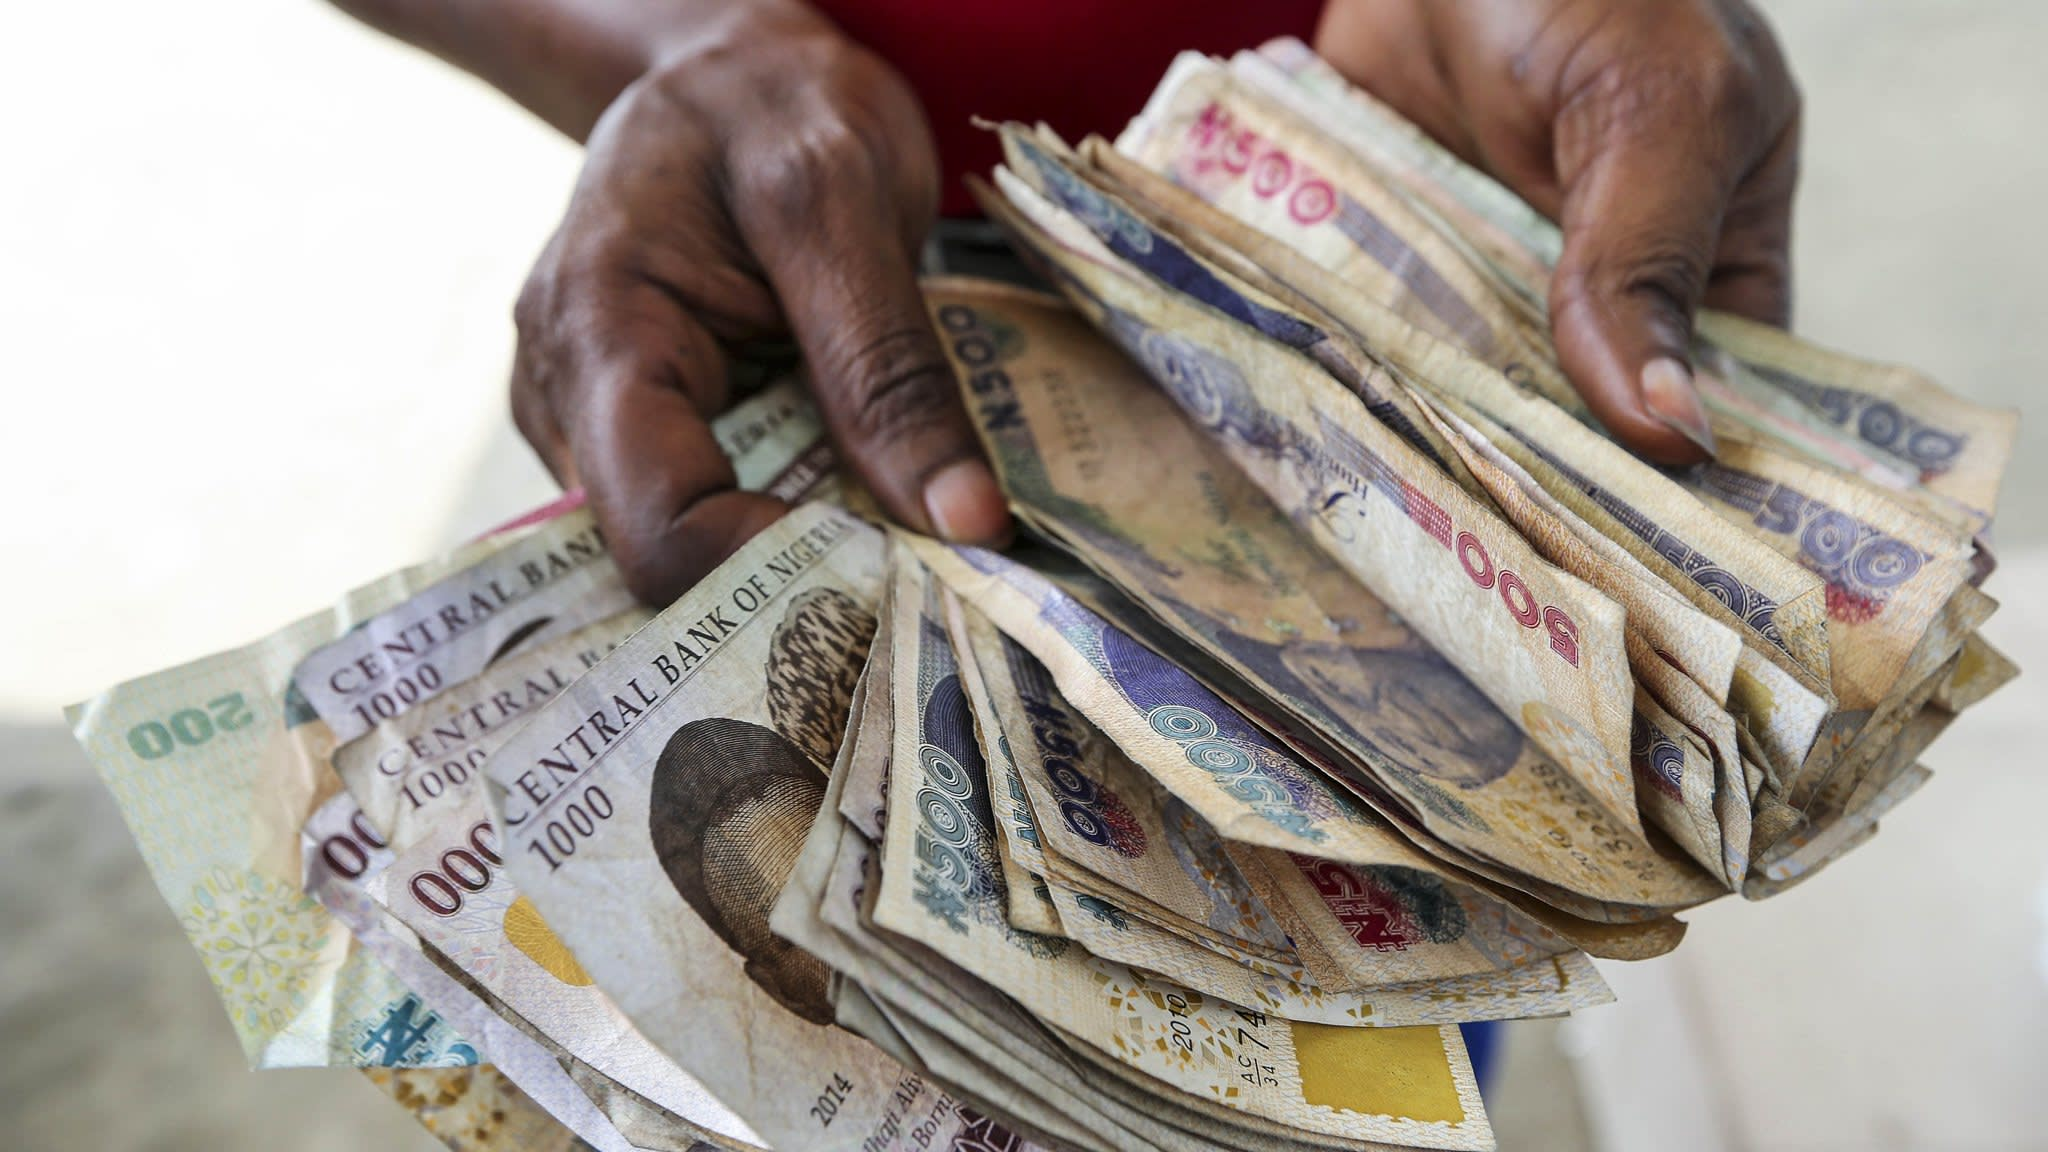 African Countries Should Demand Loans Are Made In Local Currencies